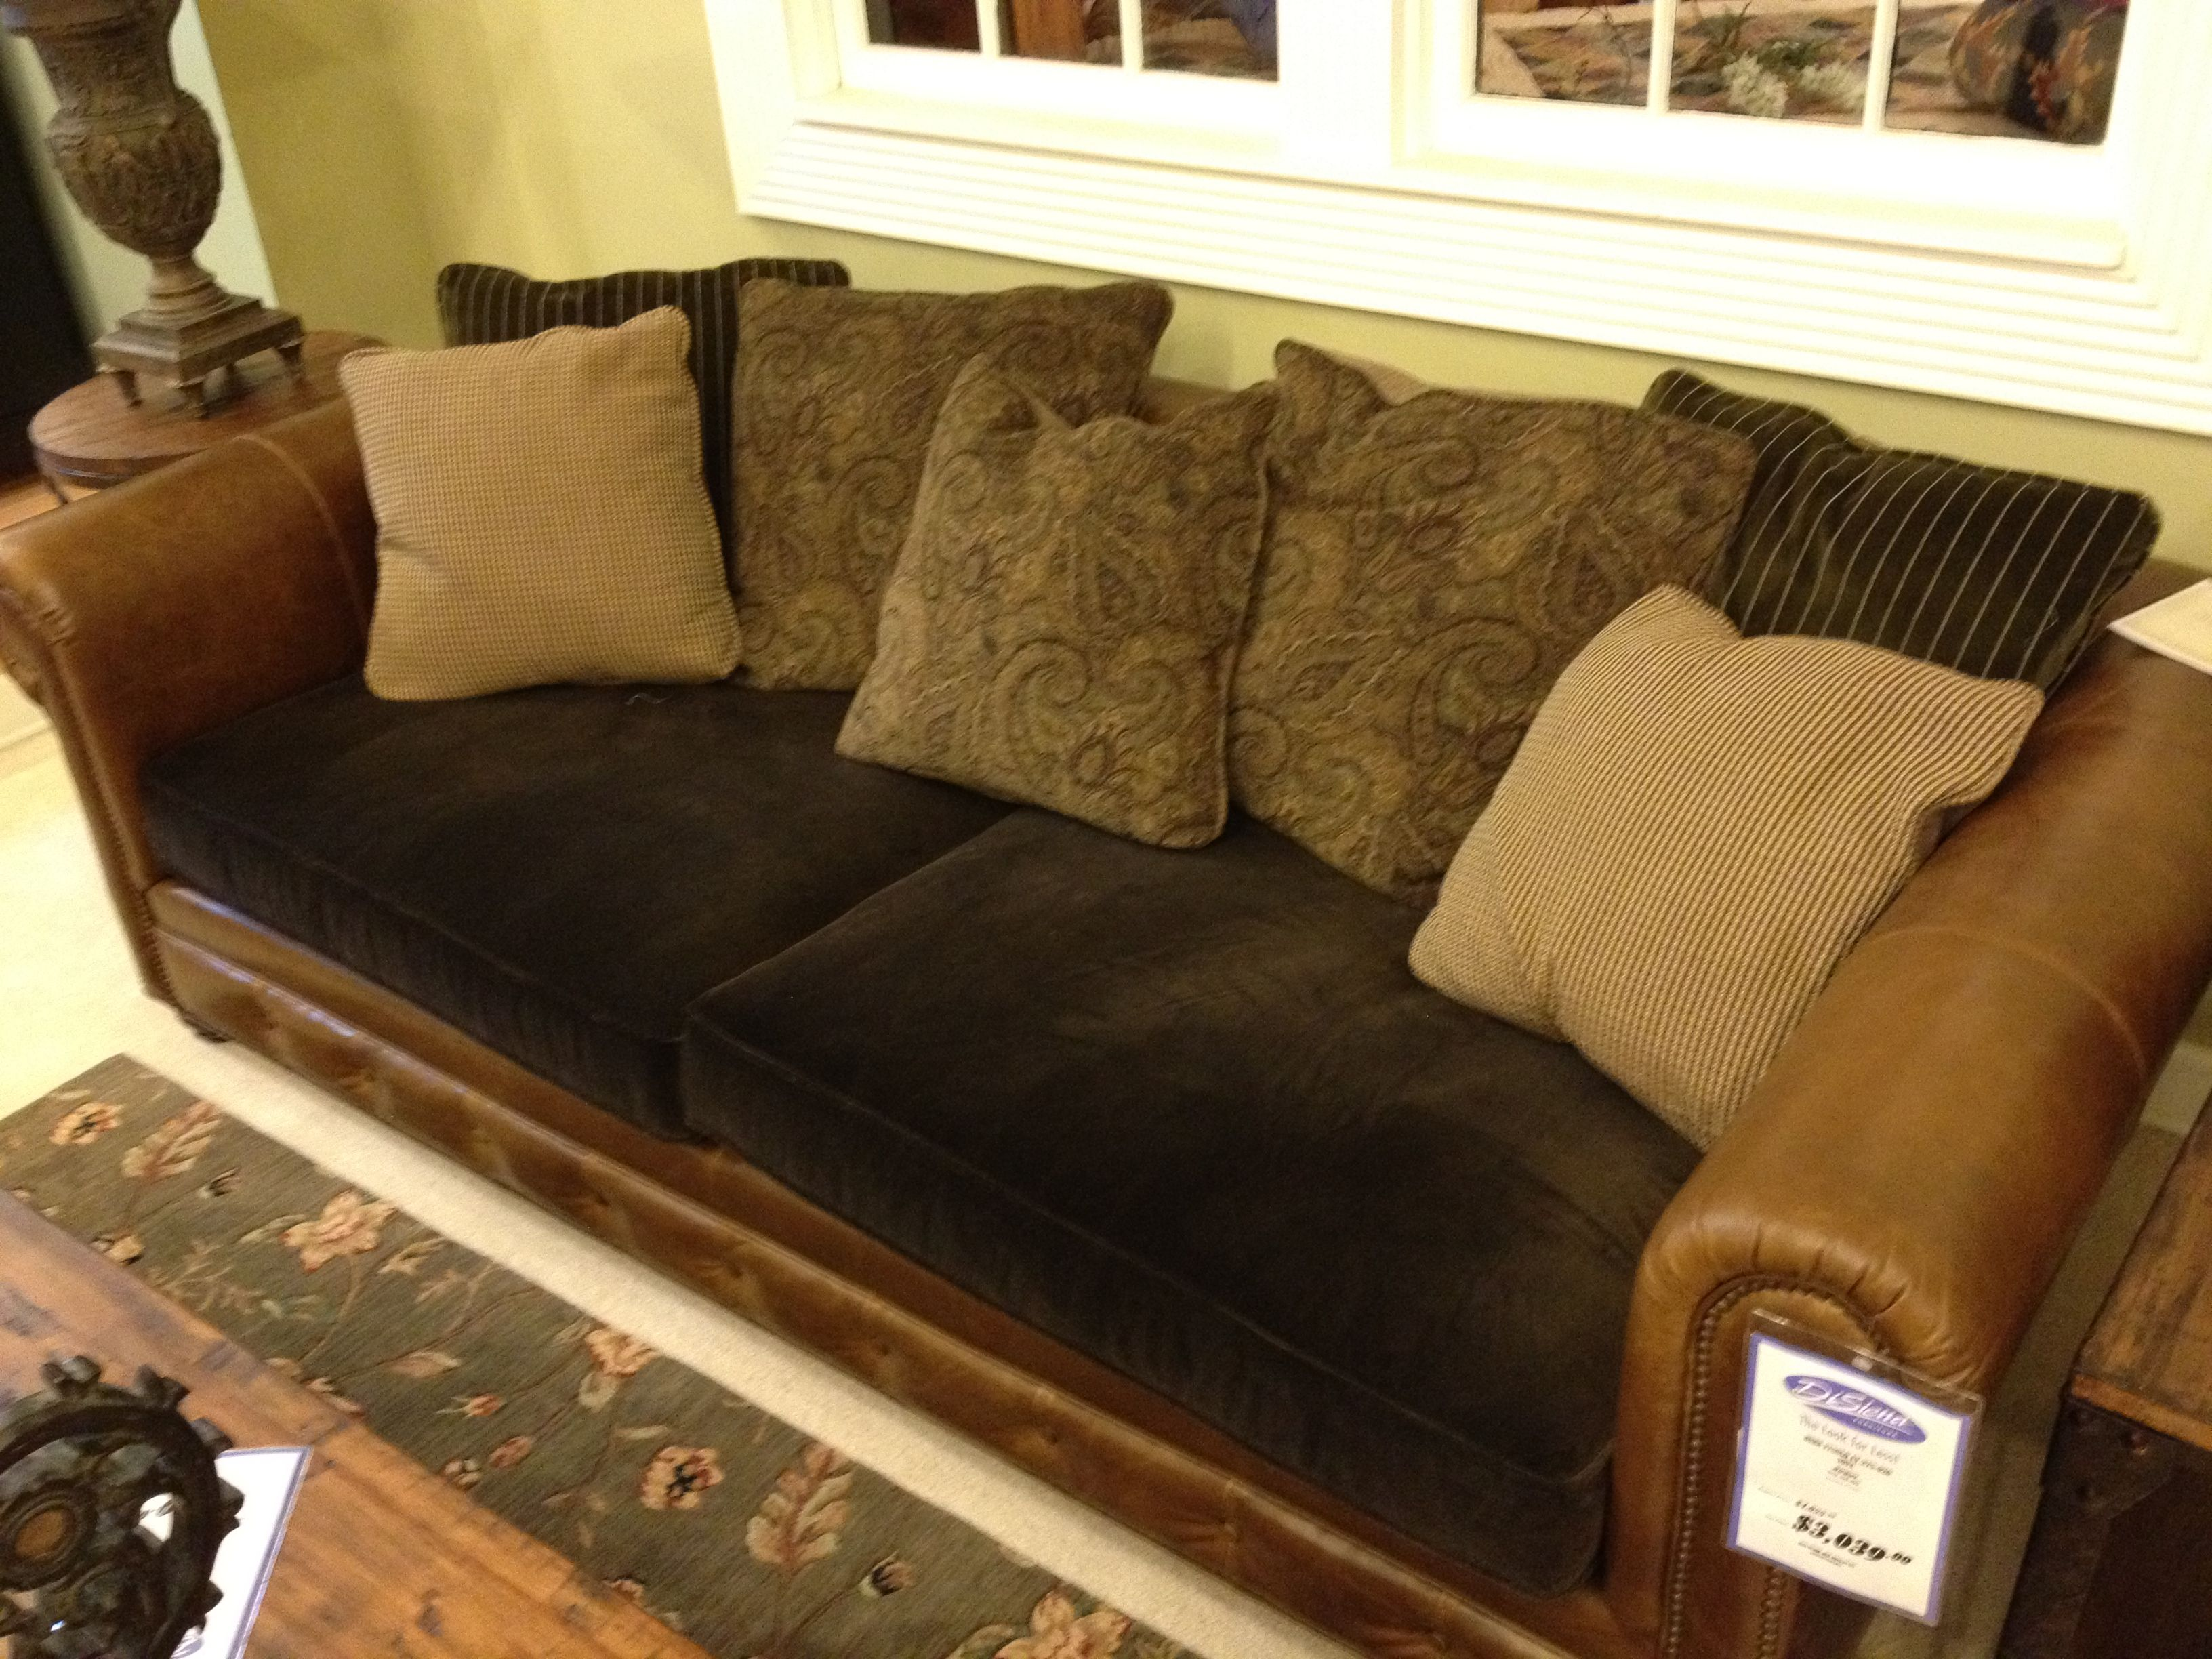 Leather couch with fabric cushions | Furniture | Cushions on sofa ...